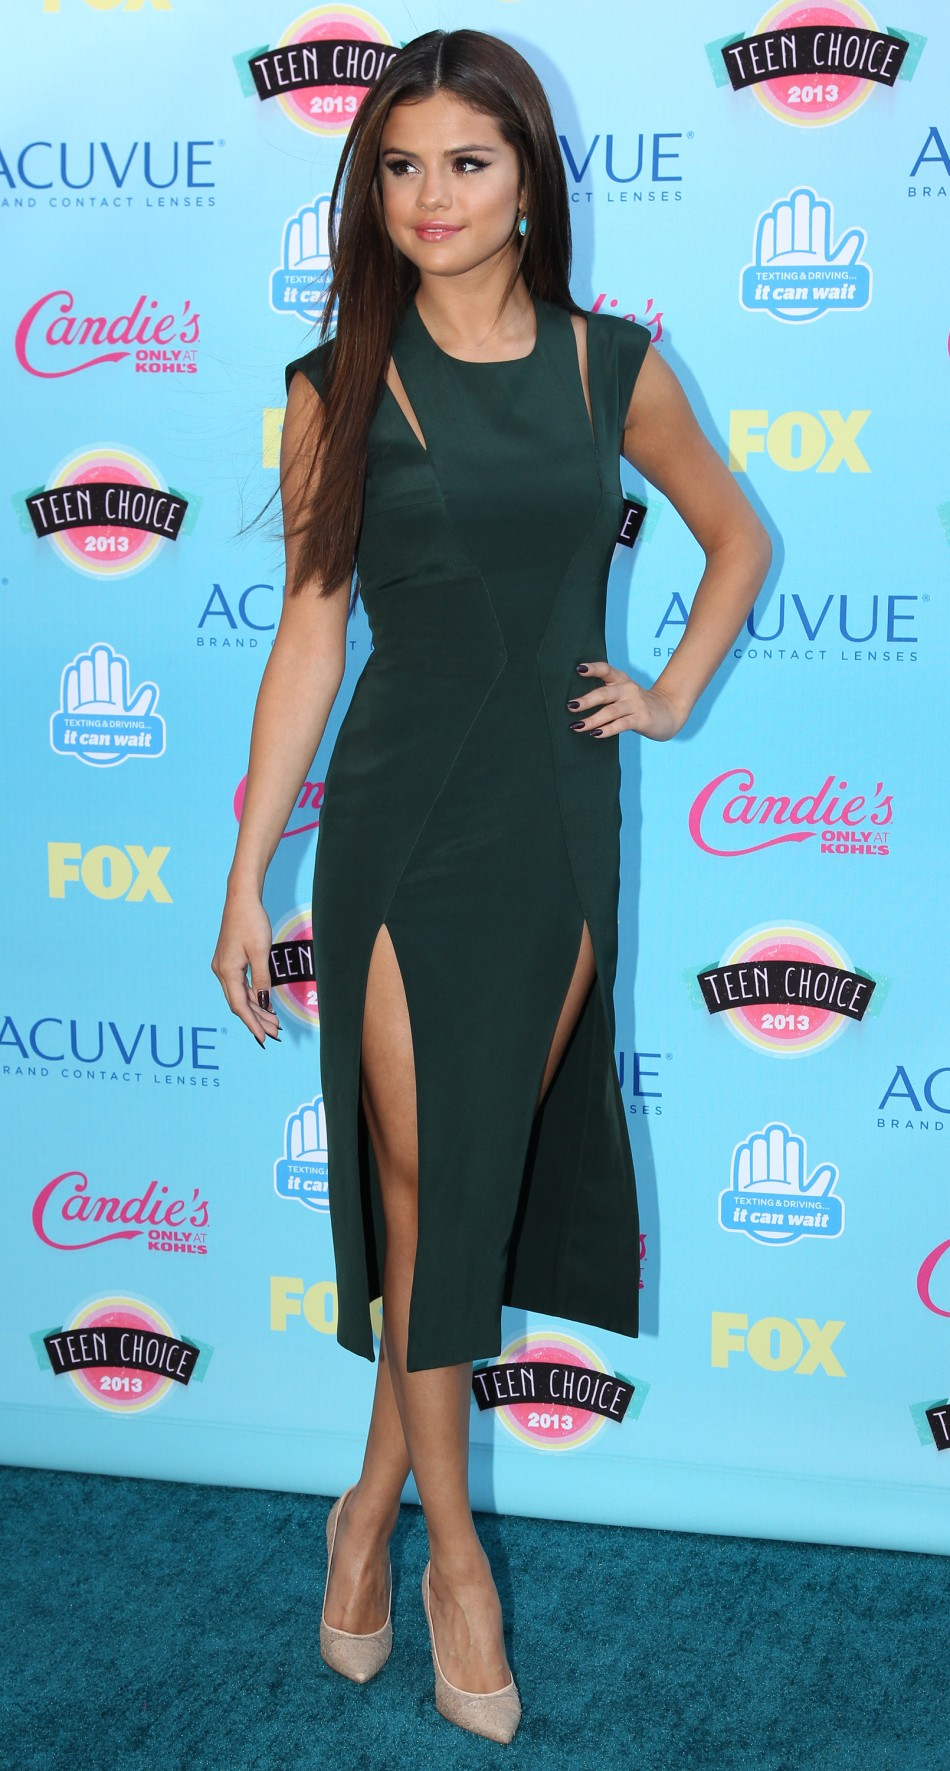 Actress and singer Selena Gomez poses as she arrives at the Teen Choice Awards at the Gibson amphitheatre in Universal City, California August 11, 2013.